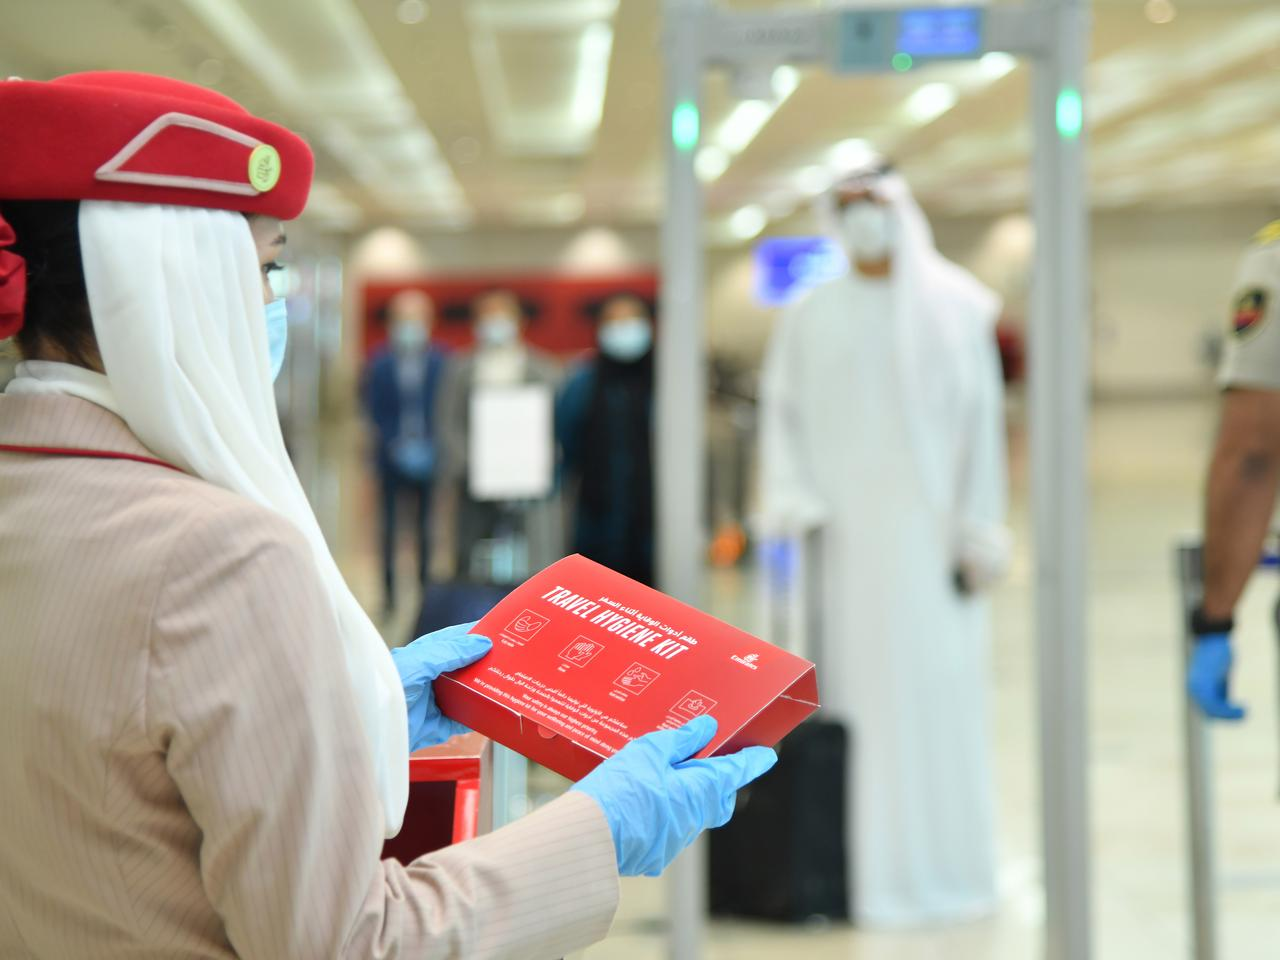 Emirates has introduced complimentary hygiene kits to be given to every passenger upon check in at Dubai International Airport and on flights to Dubai.